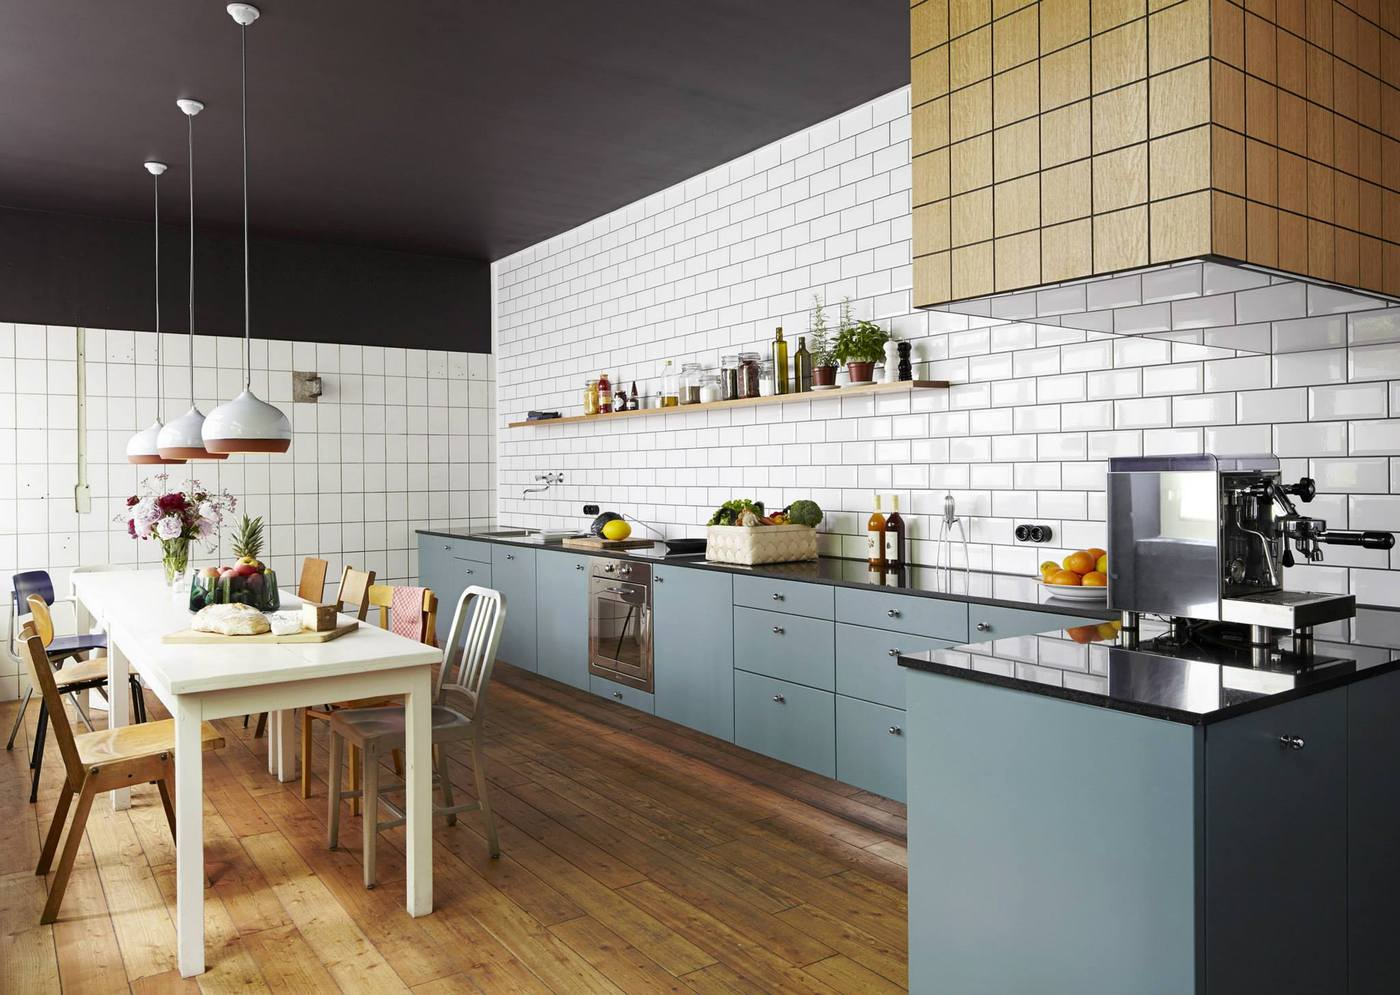 White Subway Tile Kitchen Designs are Incredibly Universal Urban